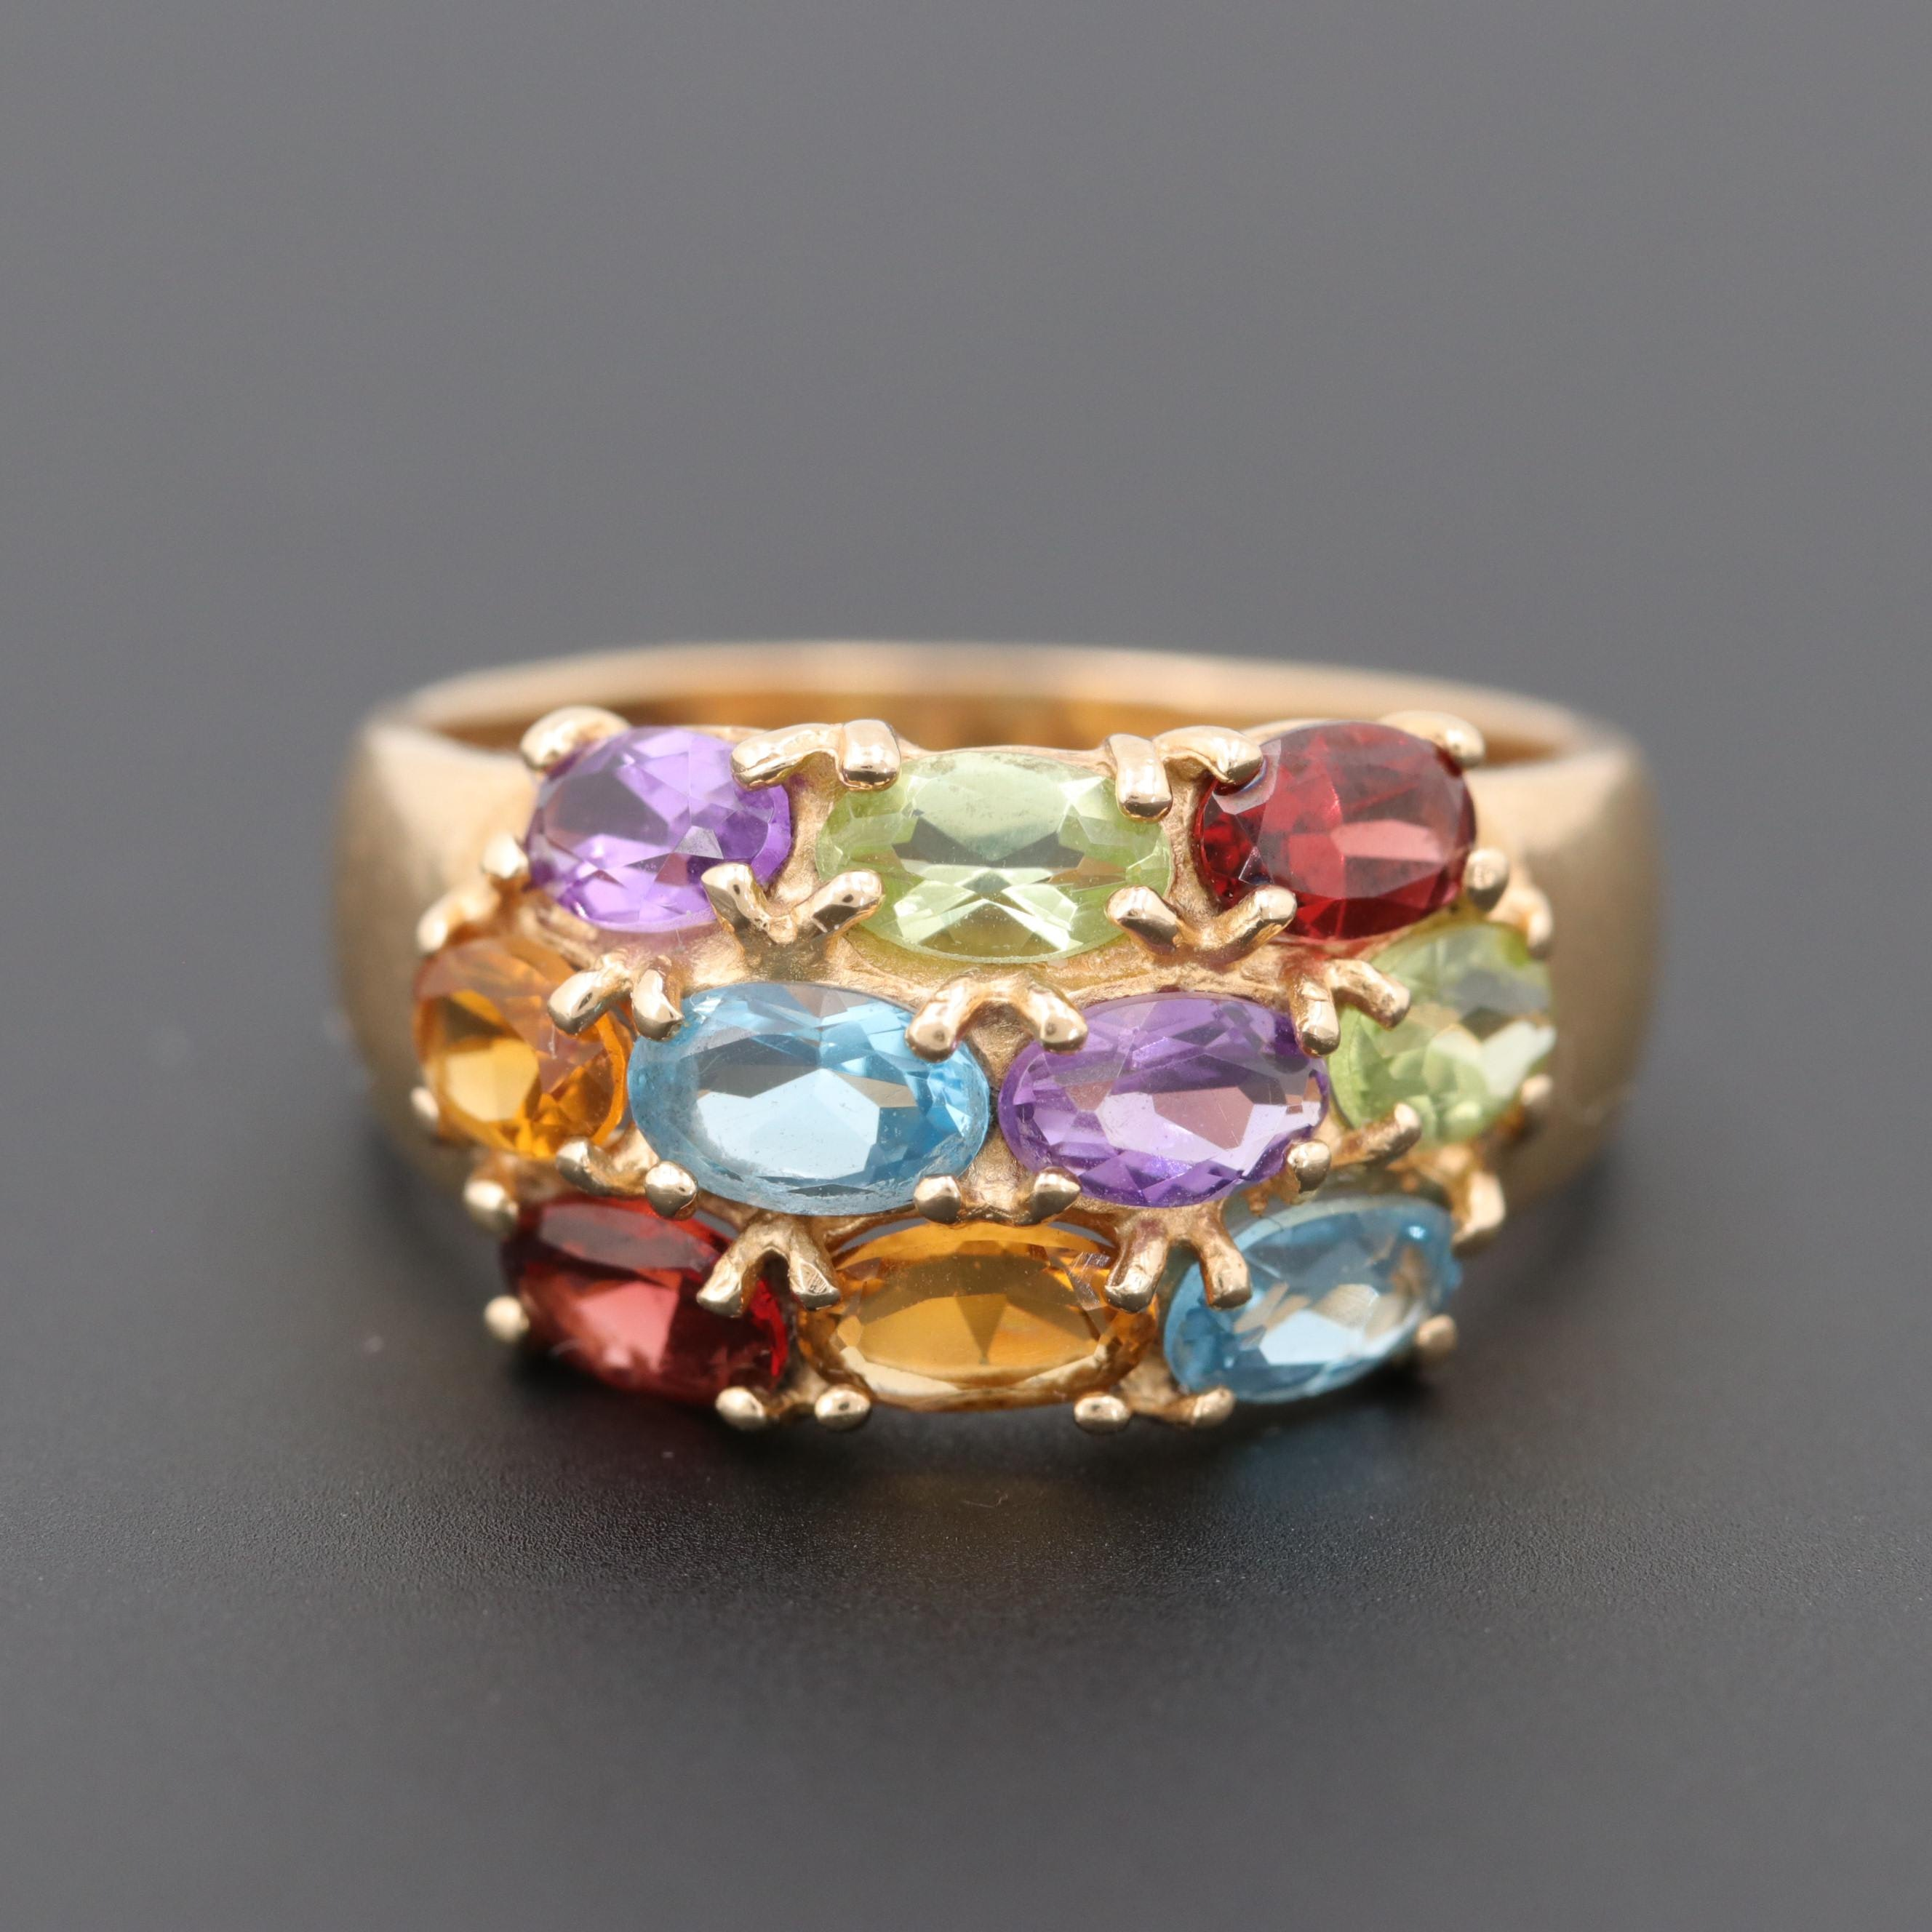 14K Yellow Gold Citrine, Topaz, and Other Gemstone Ring